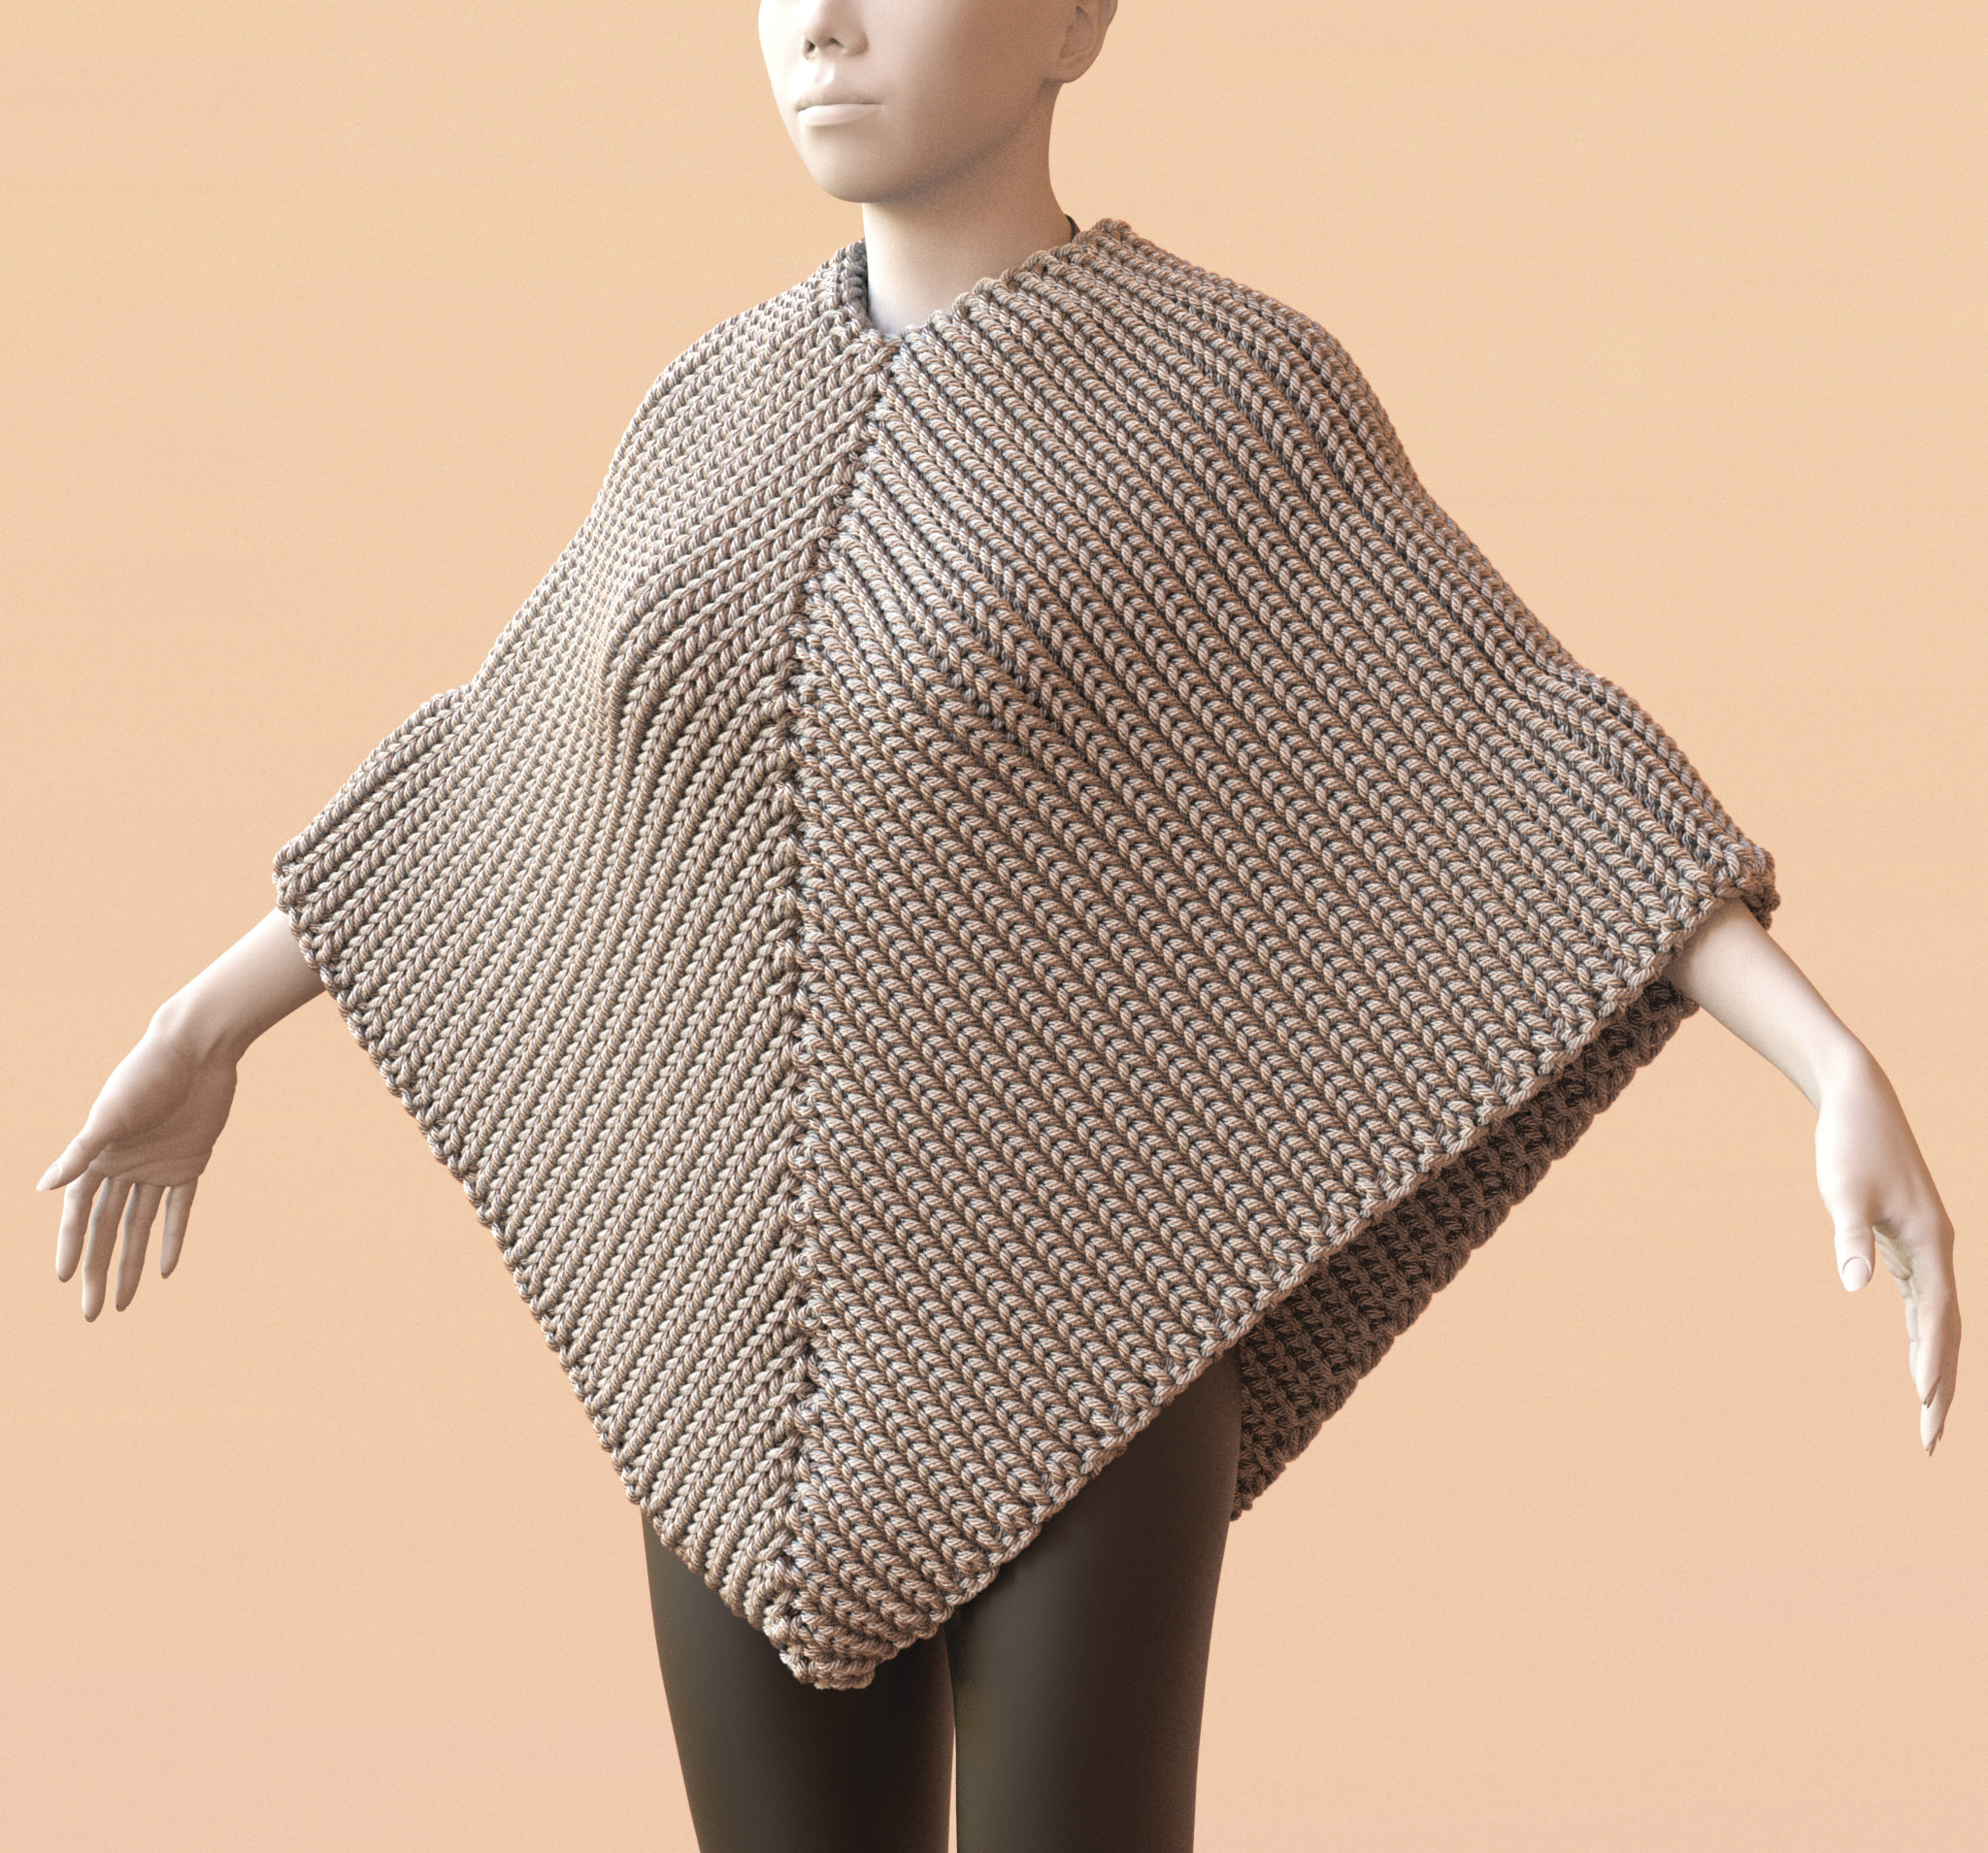 Pattern For Knitted Poncho : poncho   Mitsuba Development Blog